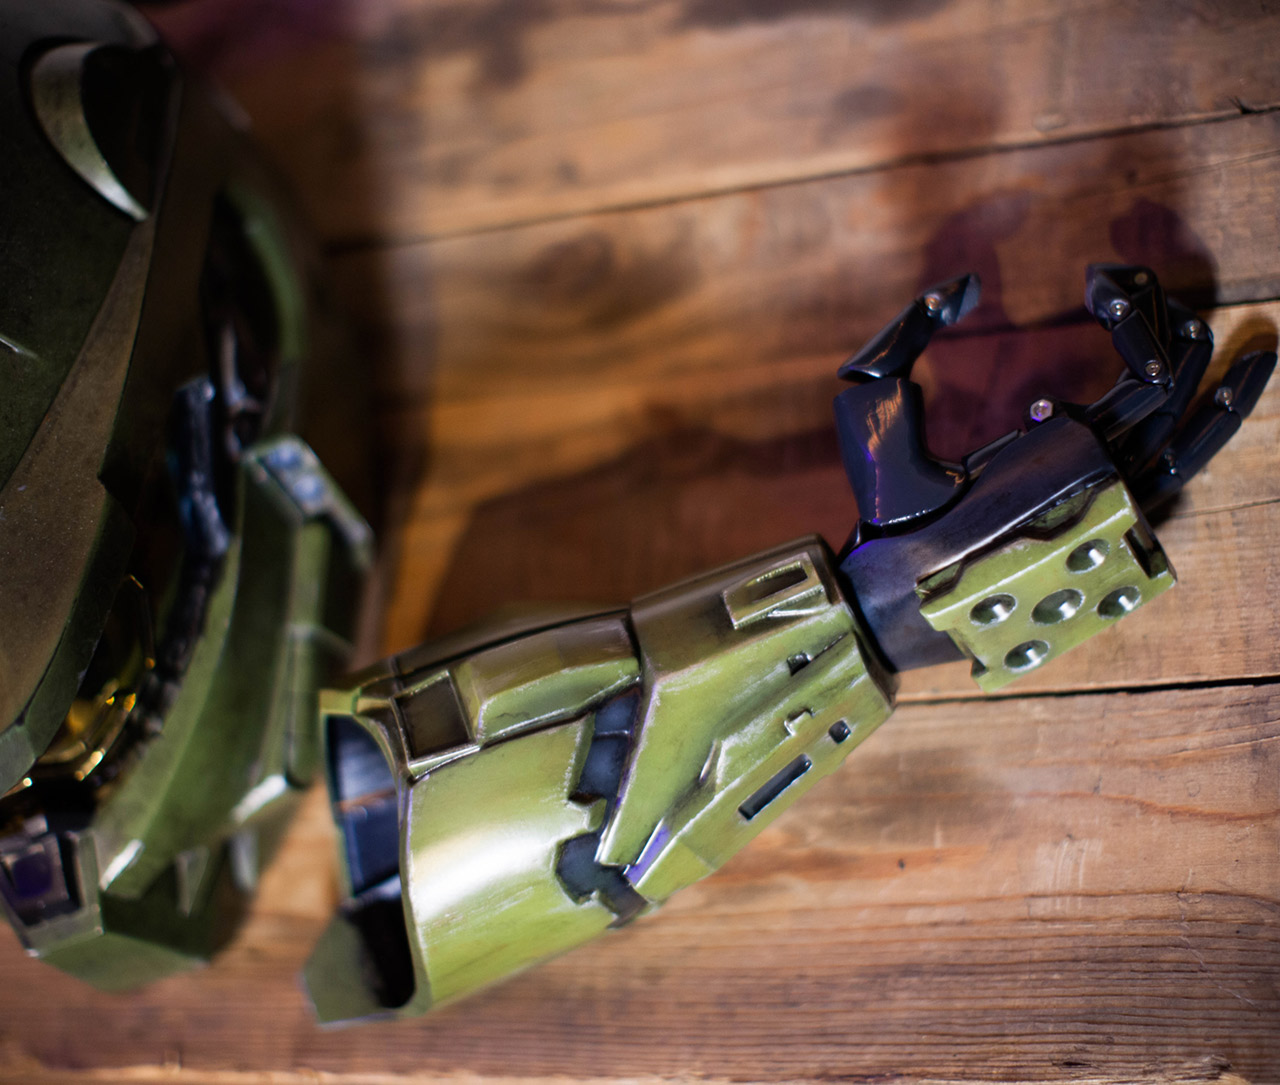 3D-Printed Halo Prosthetic Arm